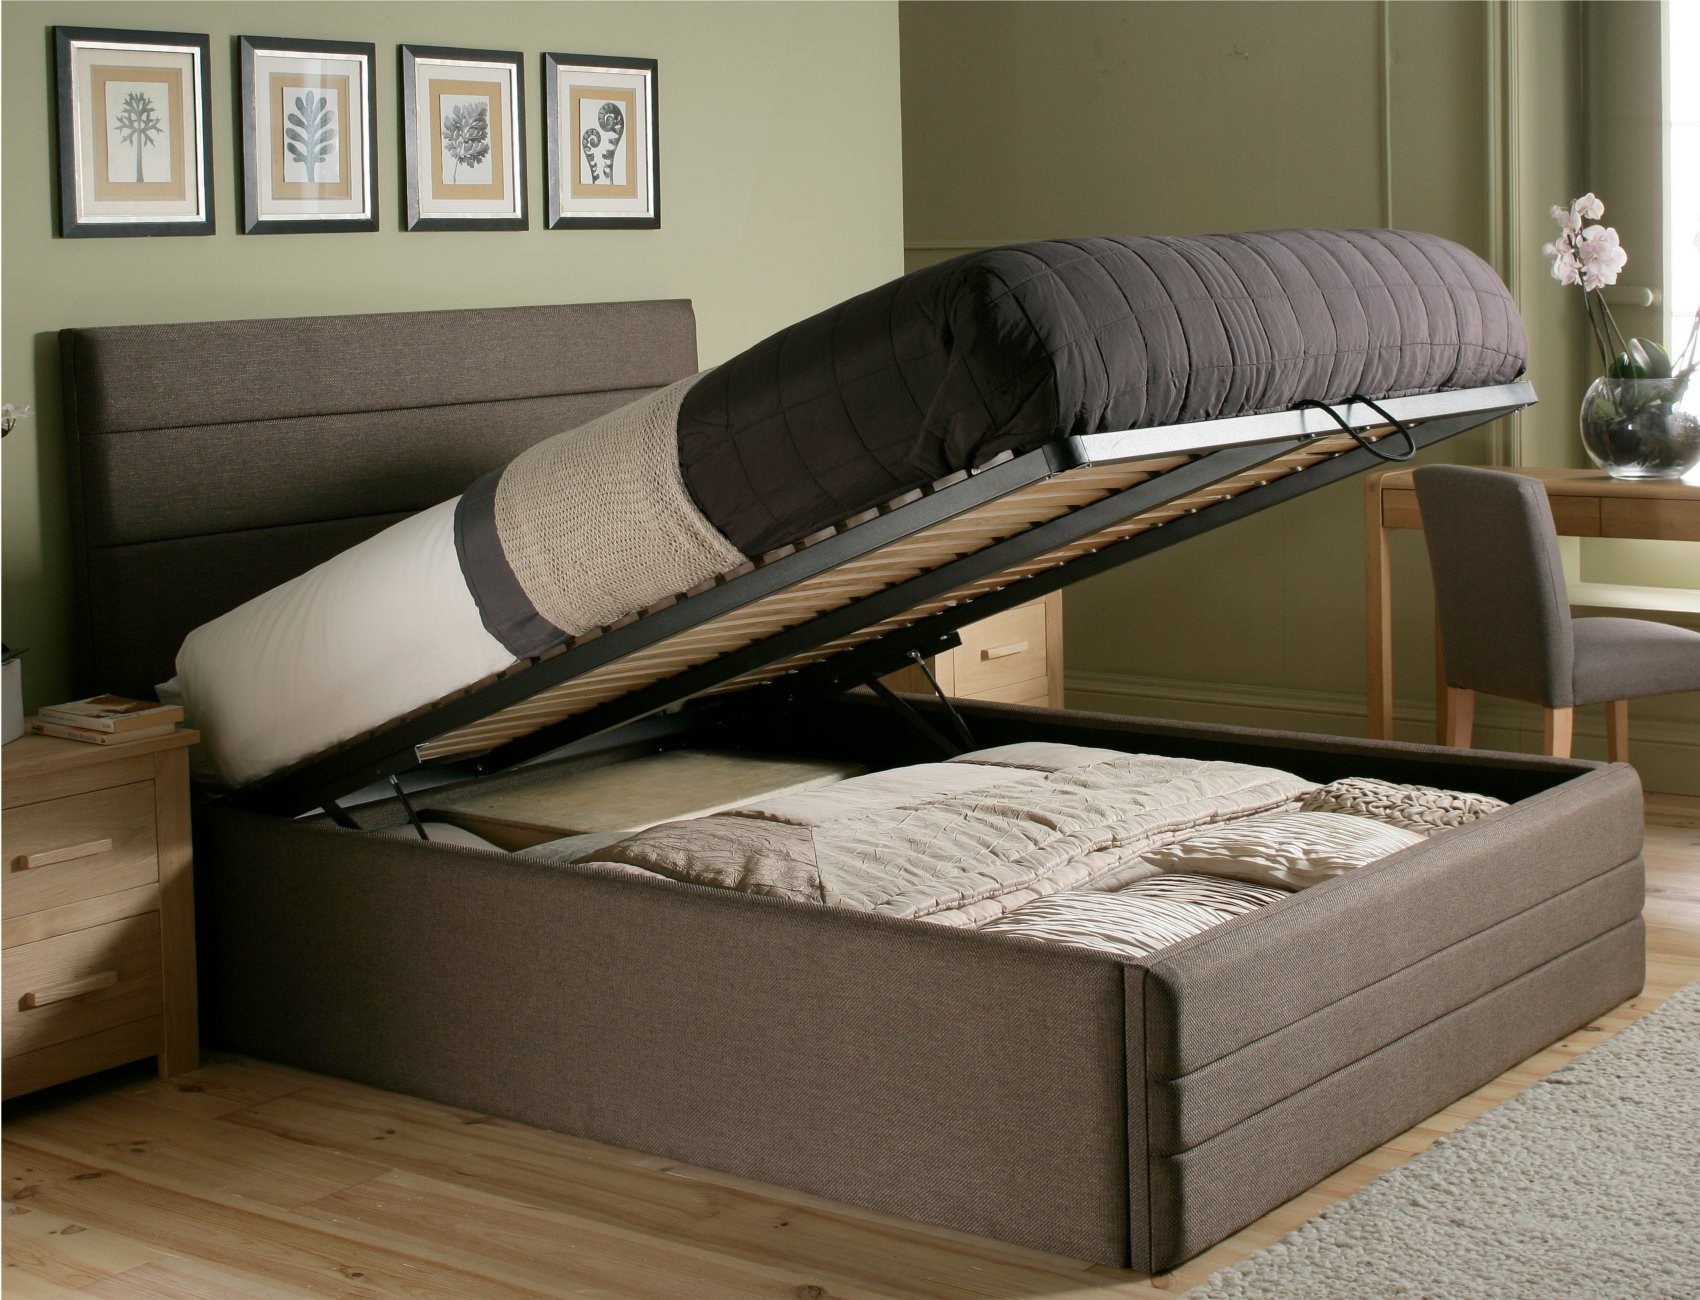 what are the benefits of storage beds? PITHMKP